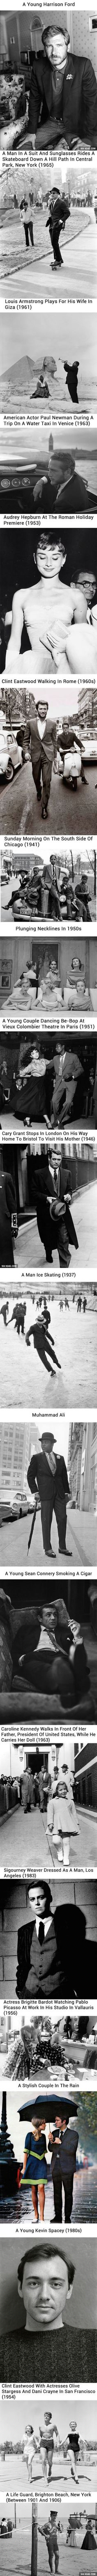 20 Historic Photos That Show People Had More Class In The Past More memes, funny videos and pics on